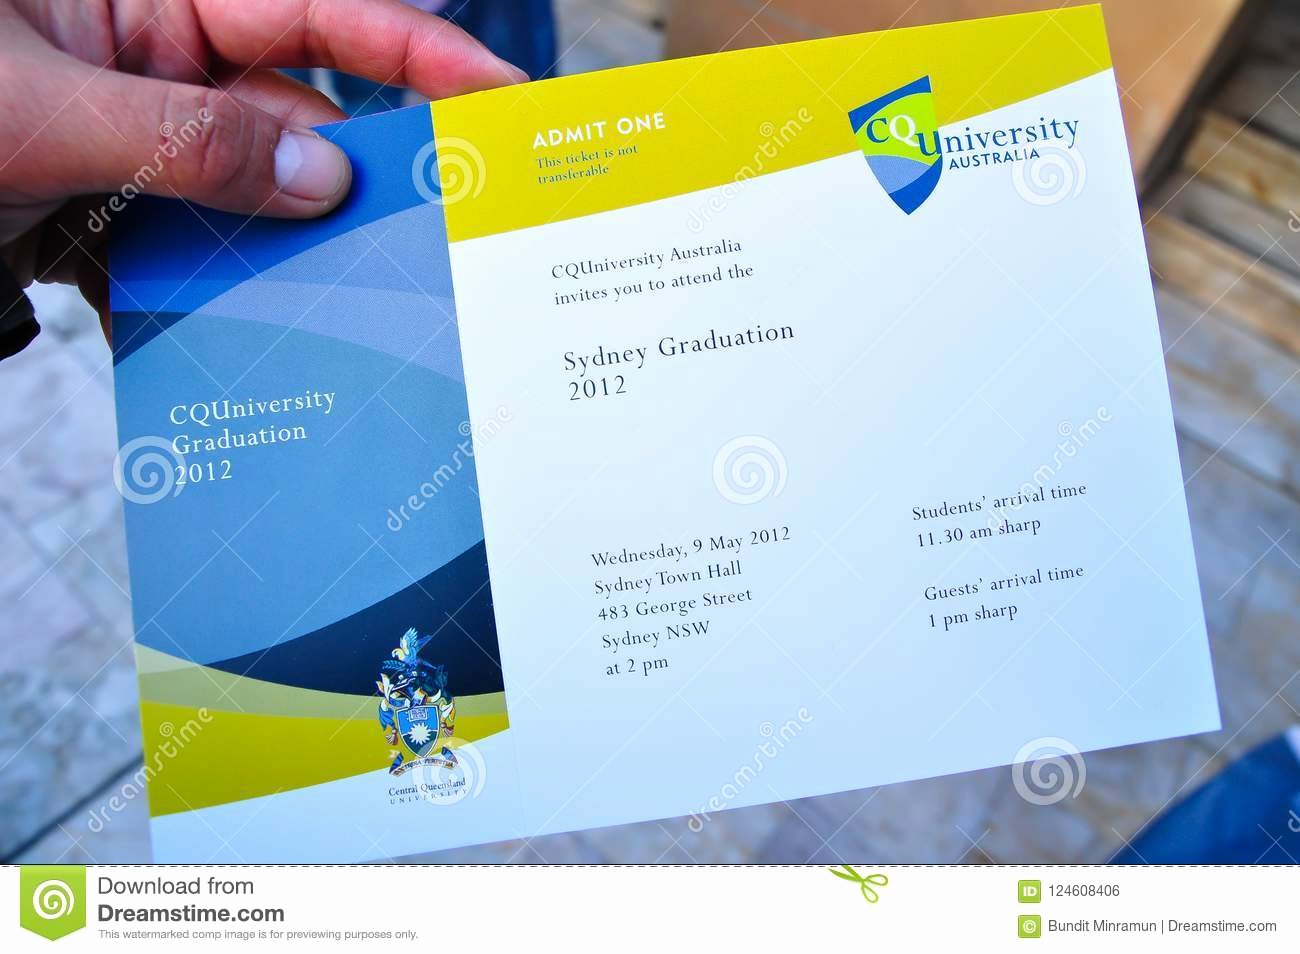 Graduation Ceremony Invitation Card Inspirational Central Queensland University Invitation Card for